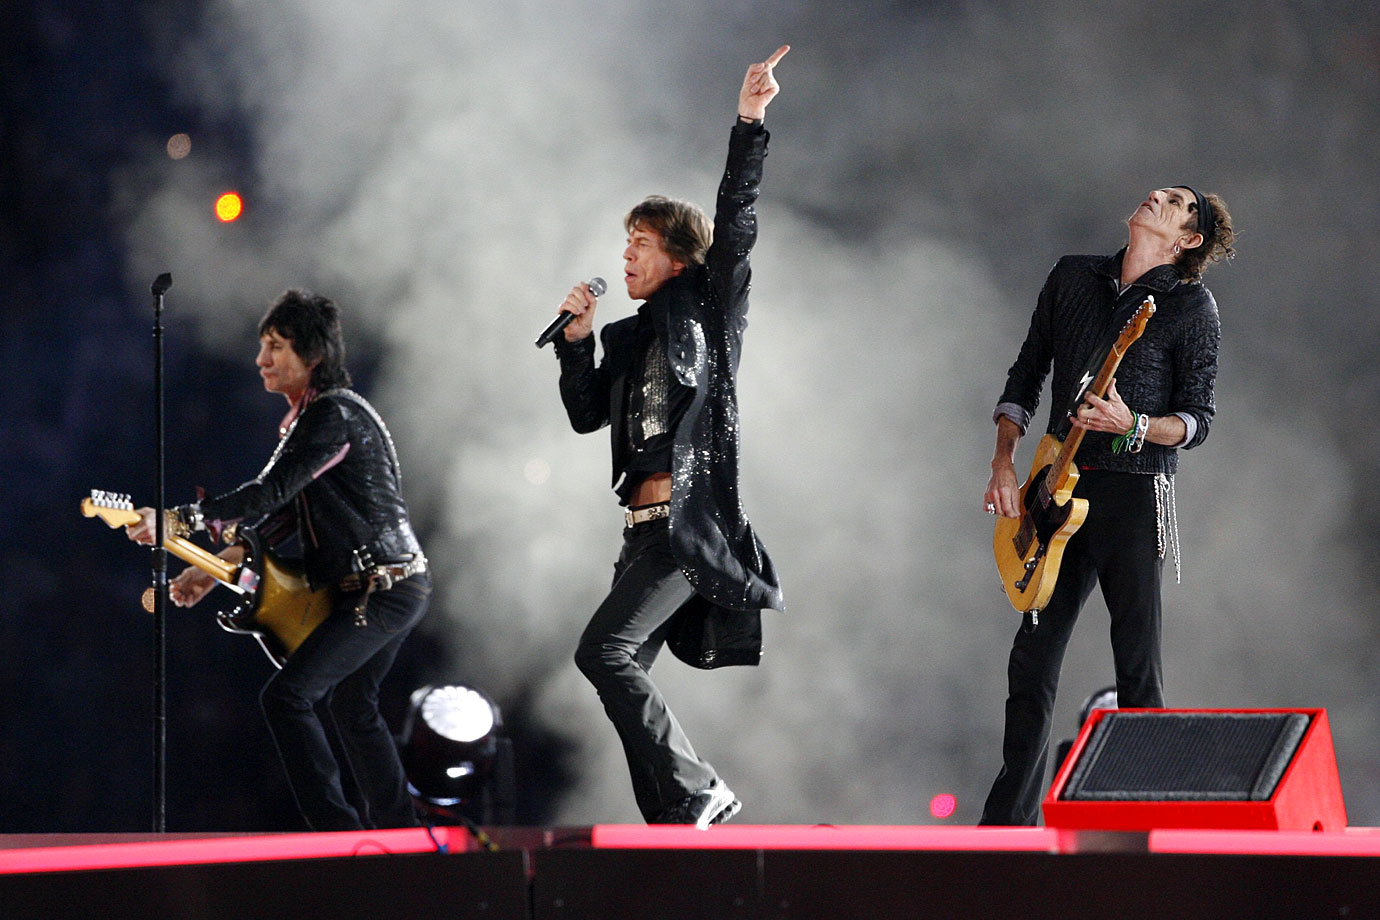 """Strutting across an enormous stage designed as a replica of the Stones' trademark tongue logo, Mick Jagger, at 62, proved that time is indeed on his side. ABC introduced a five-second delay in 2006, and censors cut lines from two of the three songs (""""Start Me Up"""" and """"Rough Justice""""). """"Here's one we could have done at Super Bowl I,"""" Jagger wryly said in introducing """"Satisfaction."""""""